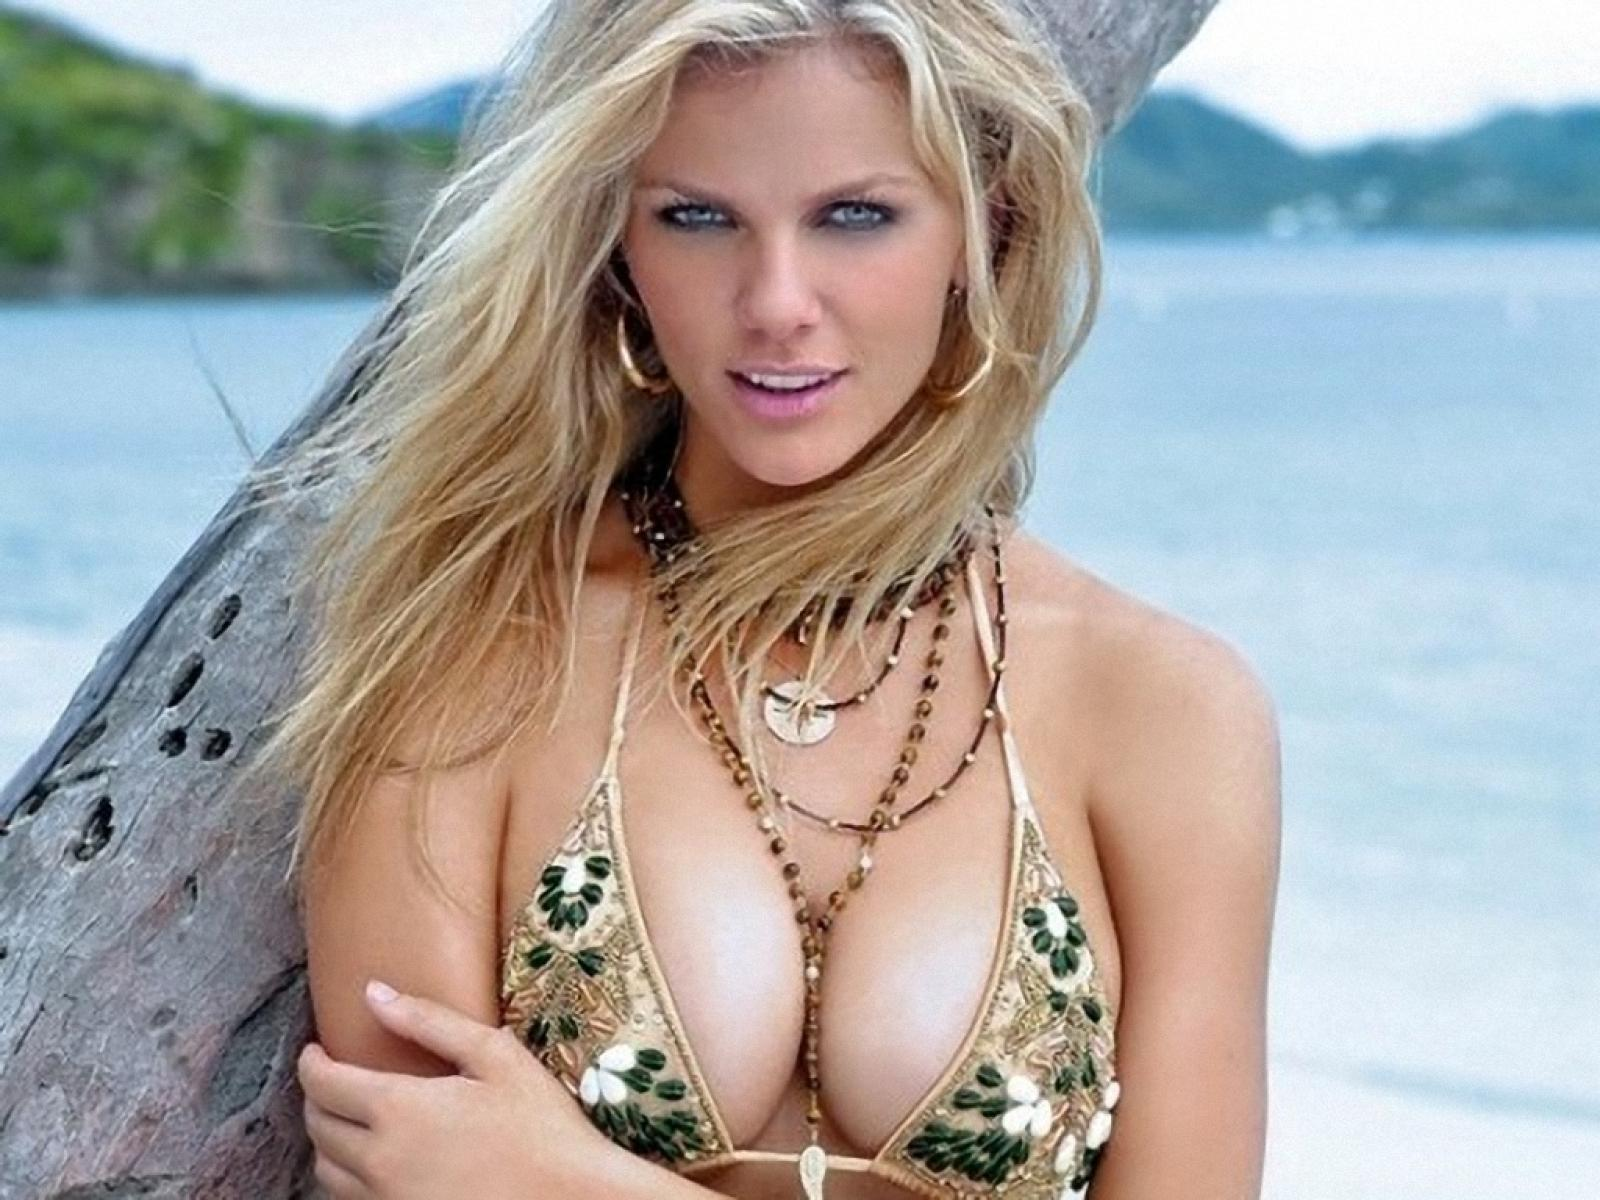 Remarkable, this Brooklyn decker hot